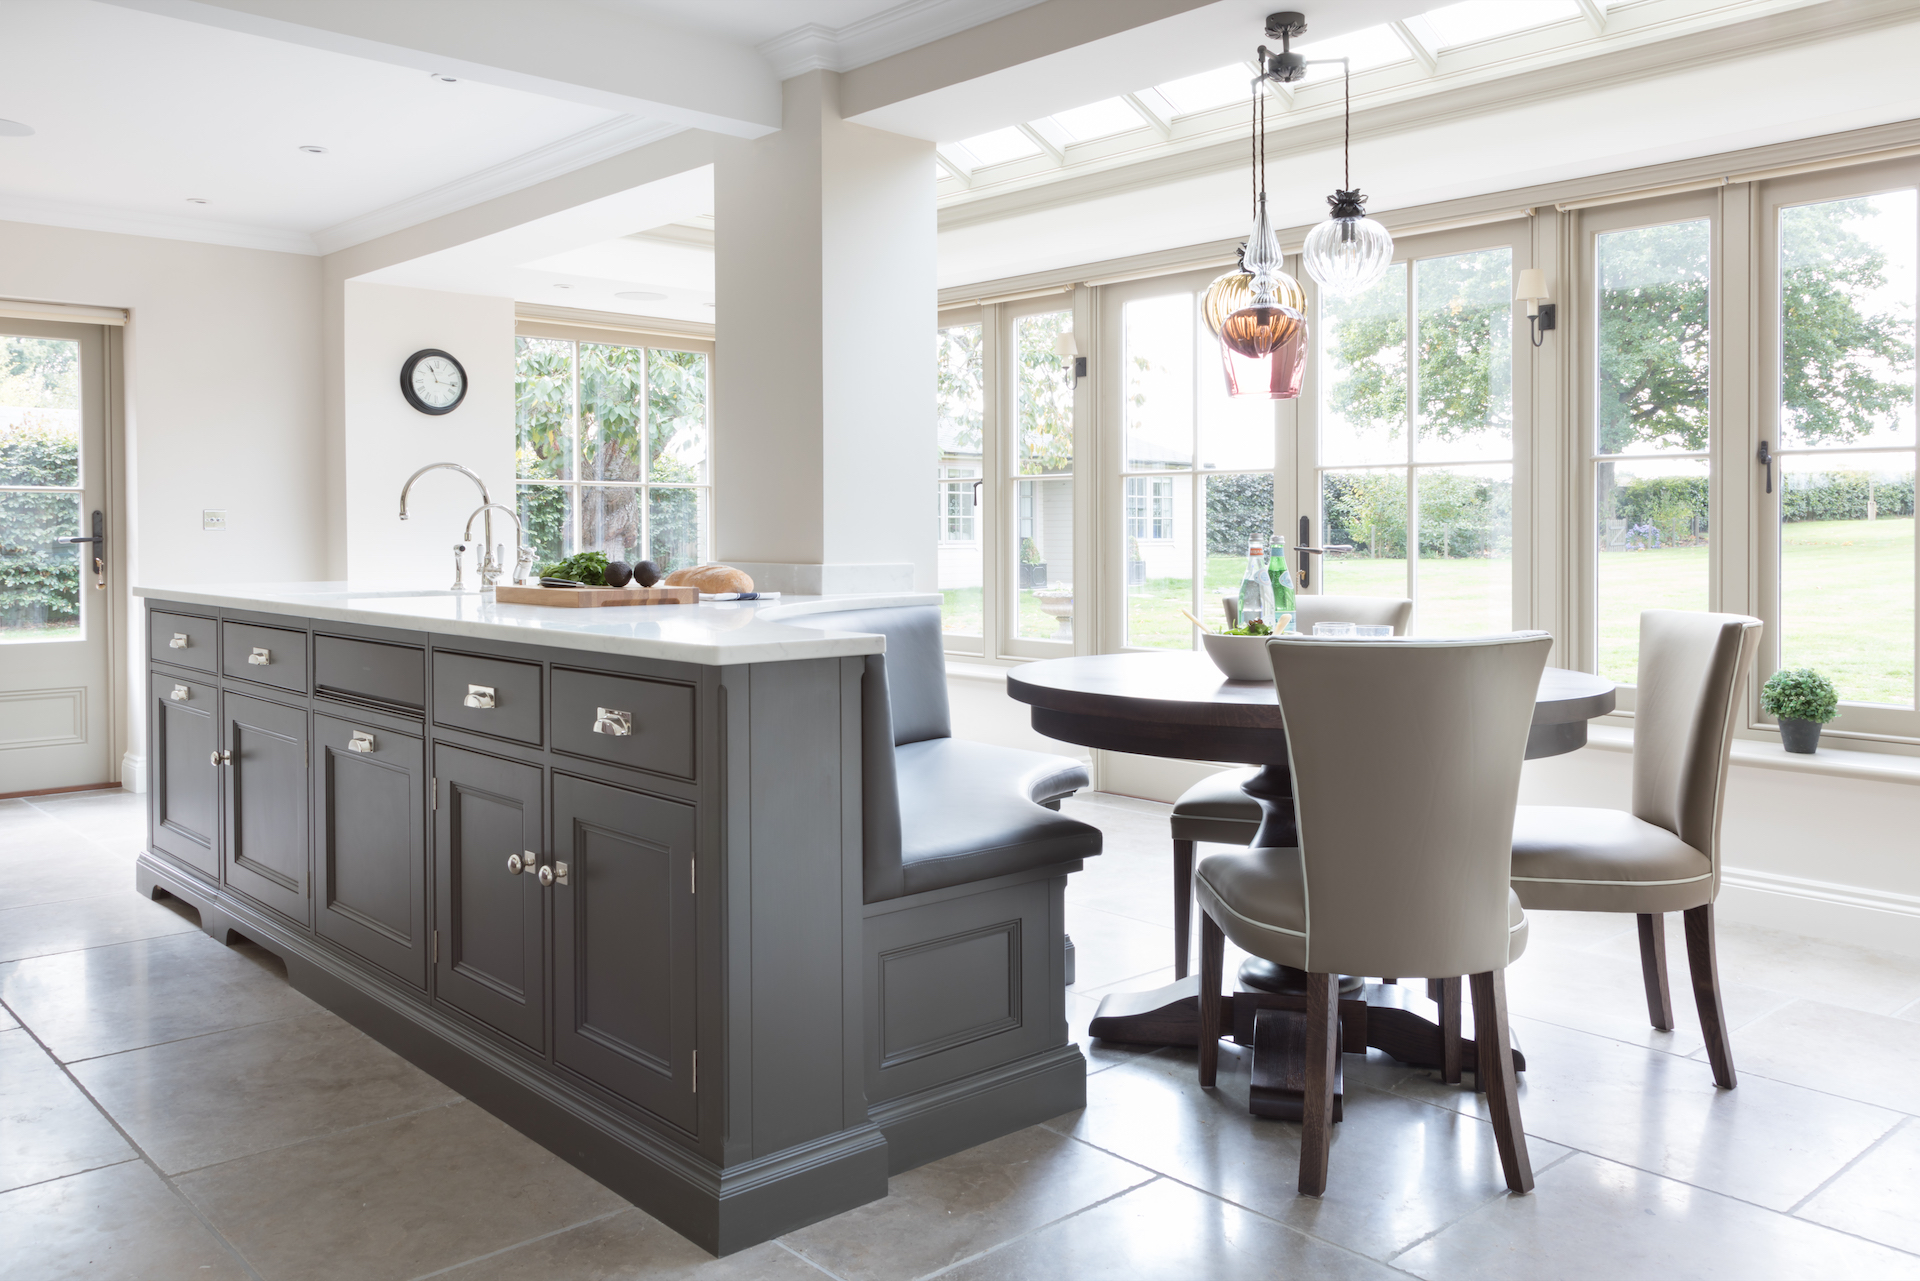 How to design a kitchen extension | Westbury Garden Rooms ...